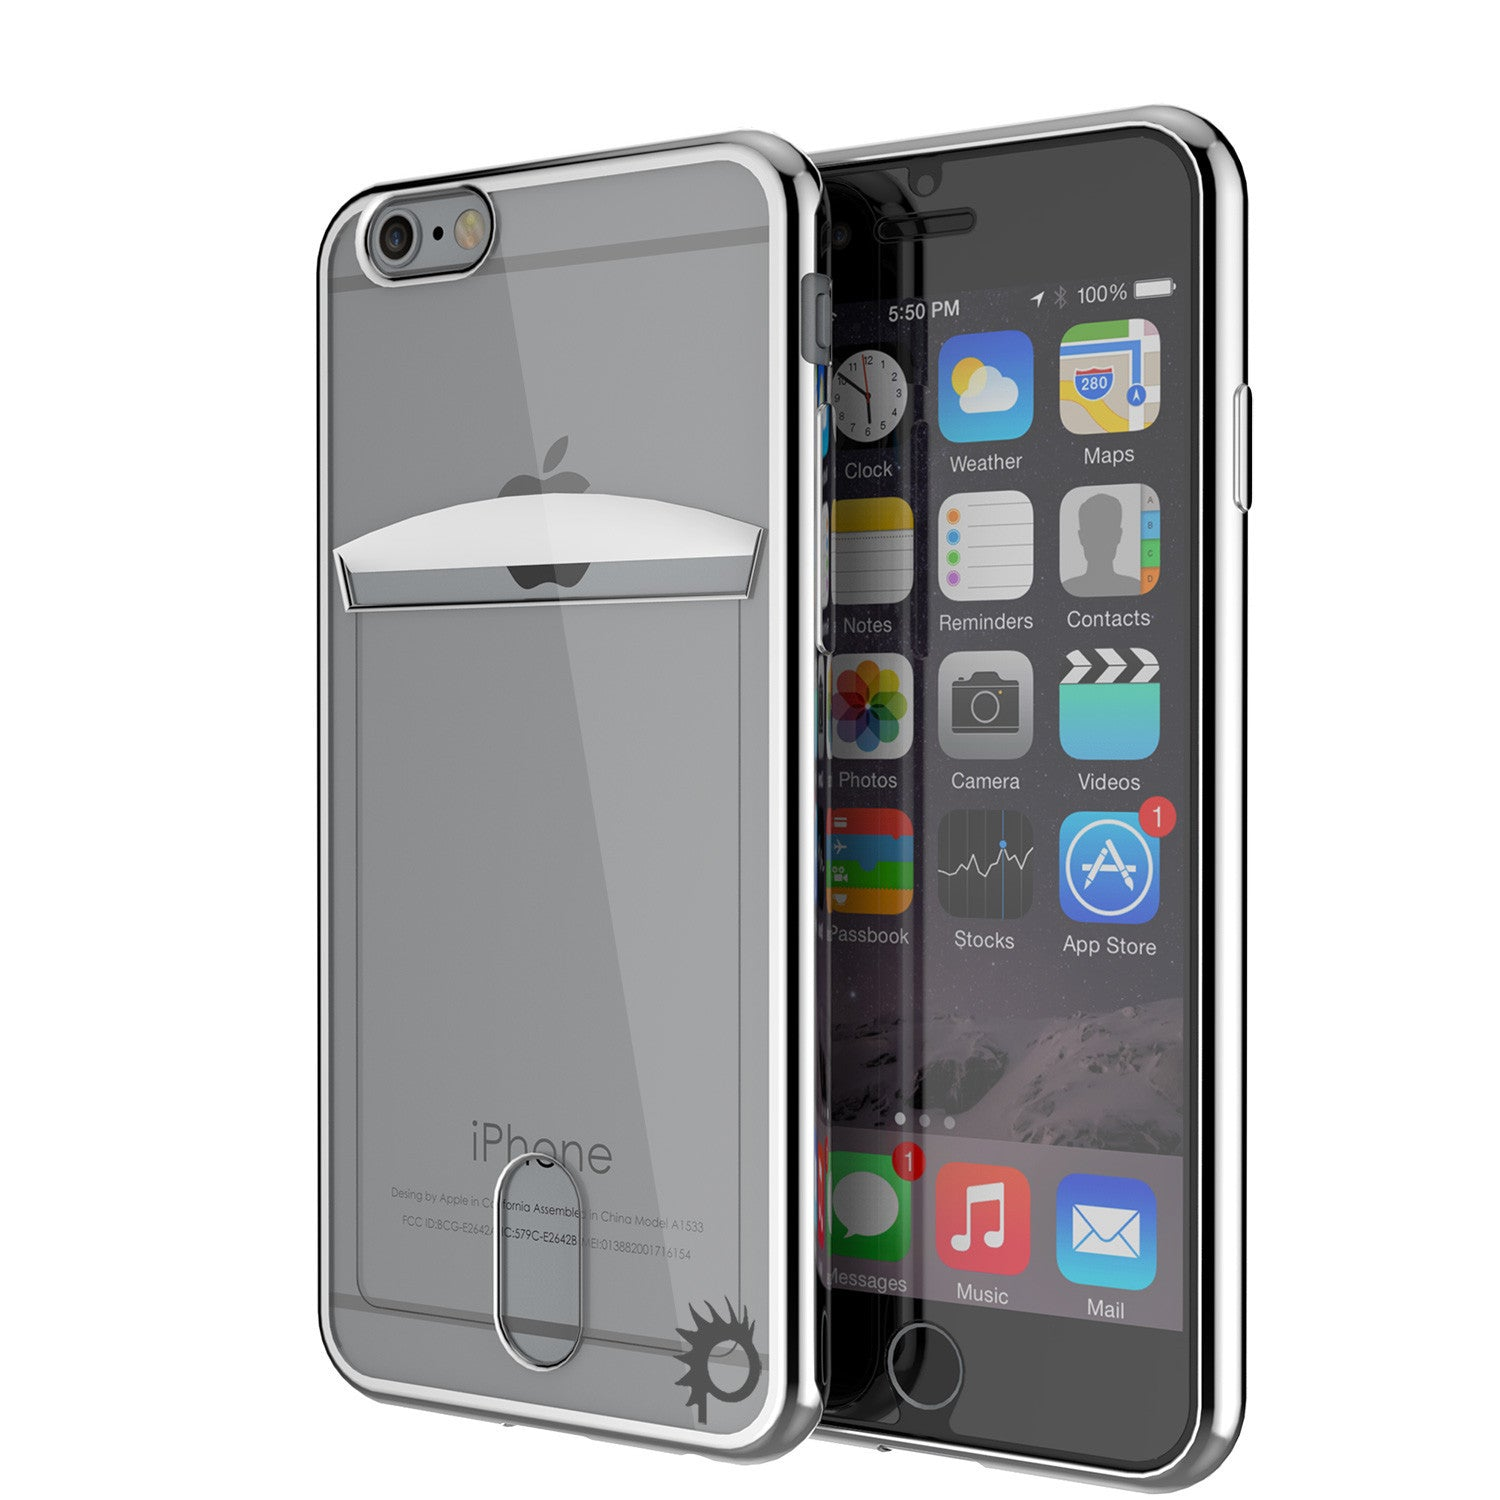 iPhone 6s+ Plus/6+ Plus Case, PUNKCASE® LUCID Silver Series | Card Slot | SHIELD Screen Protector